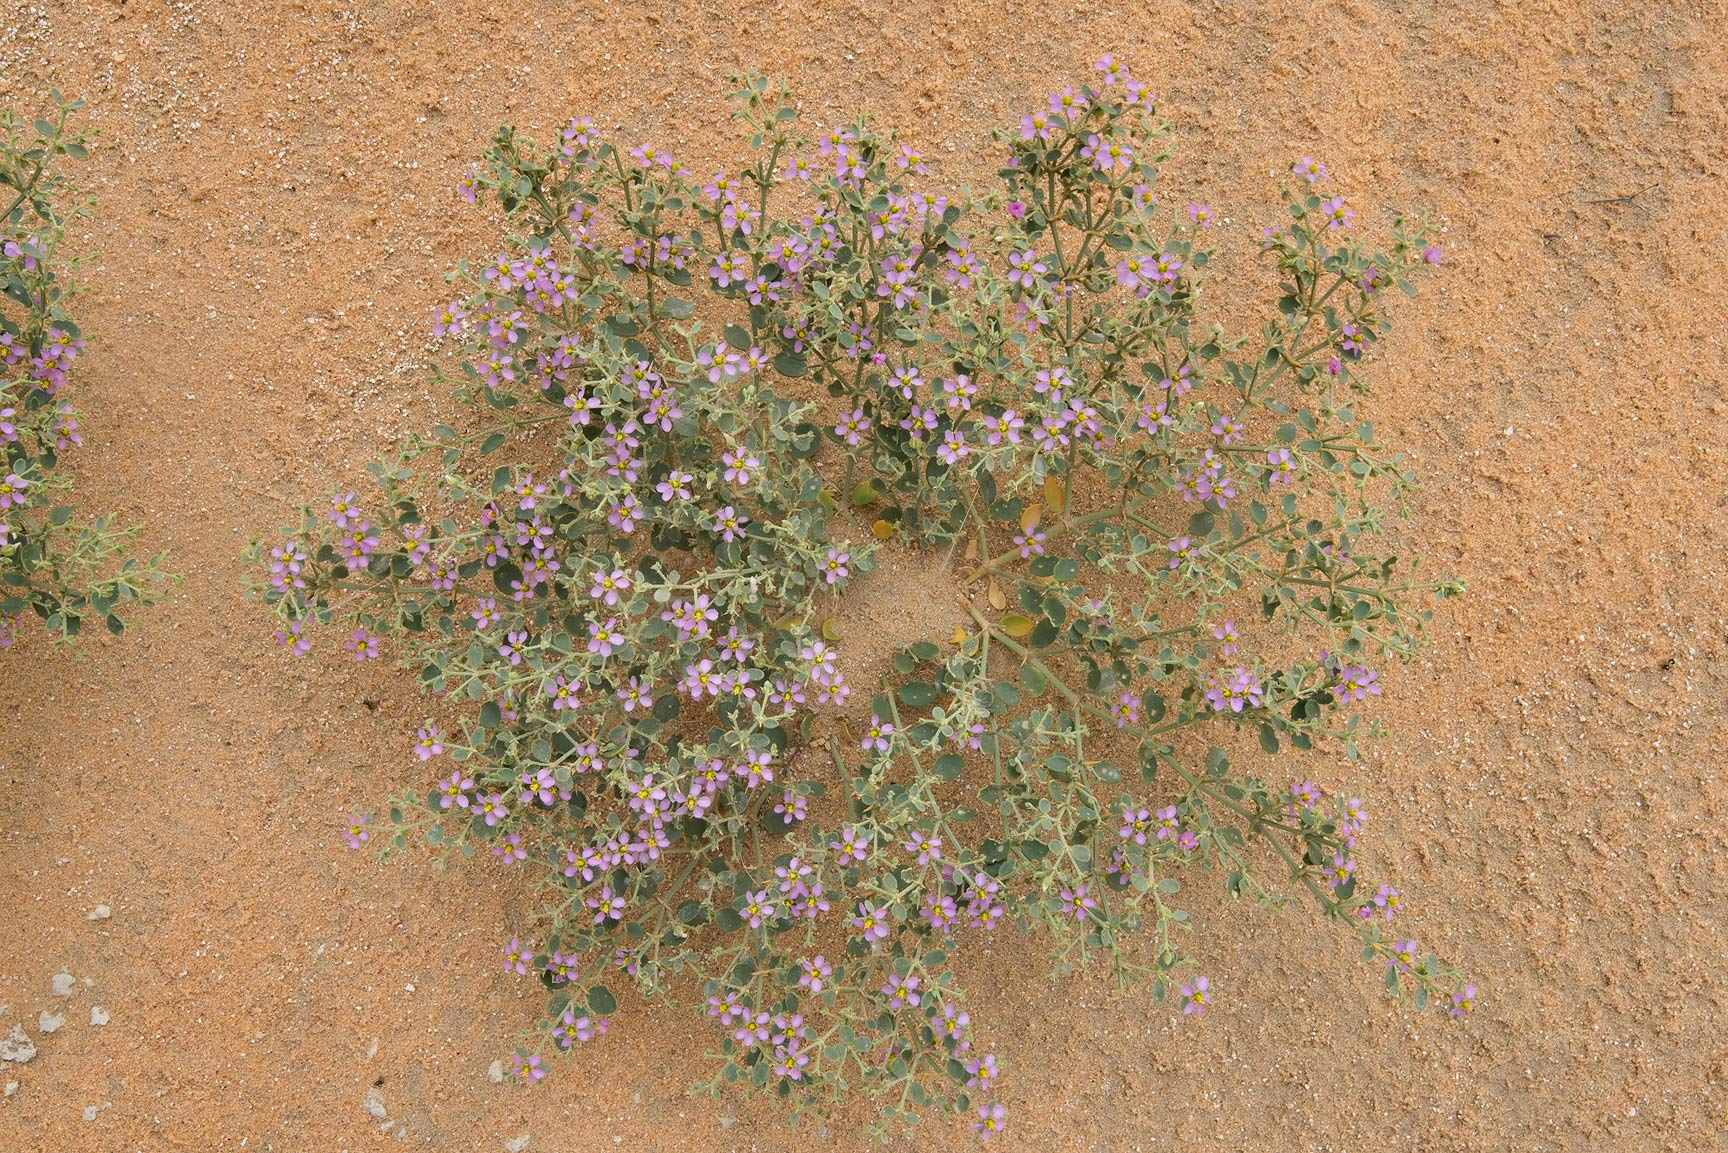 Plant of Fagonia indica on sand dunes in...Reserve near Abu Samra. Southern Qatar